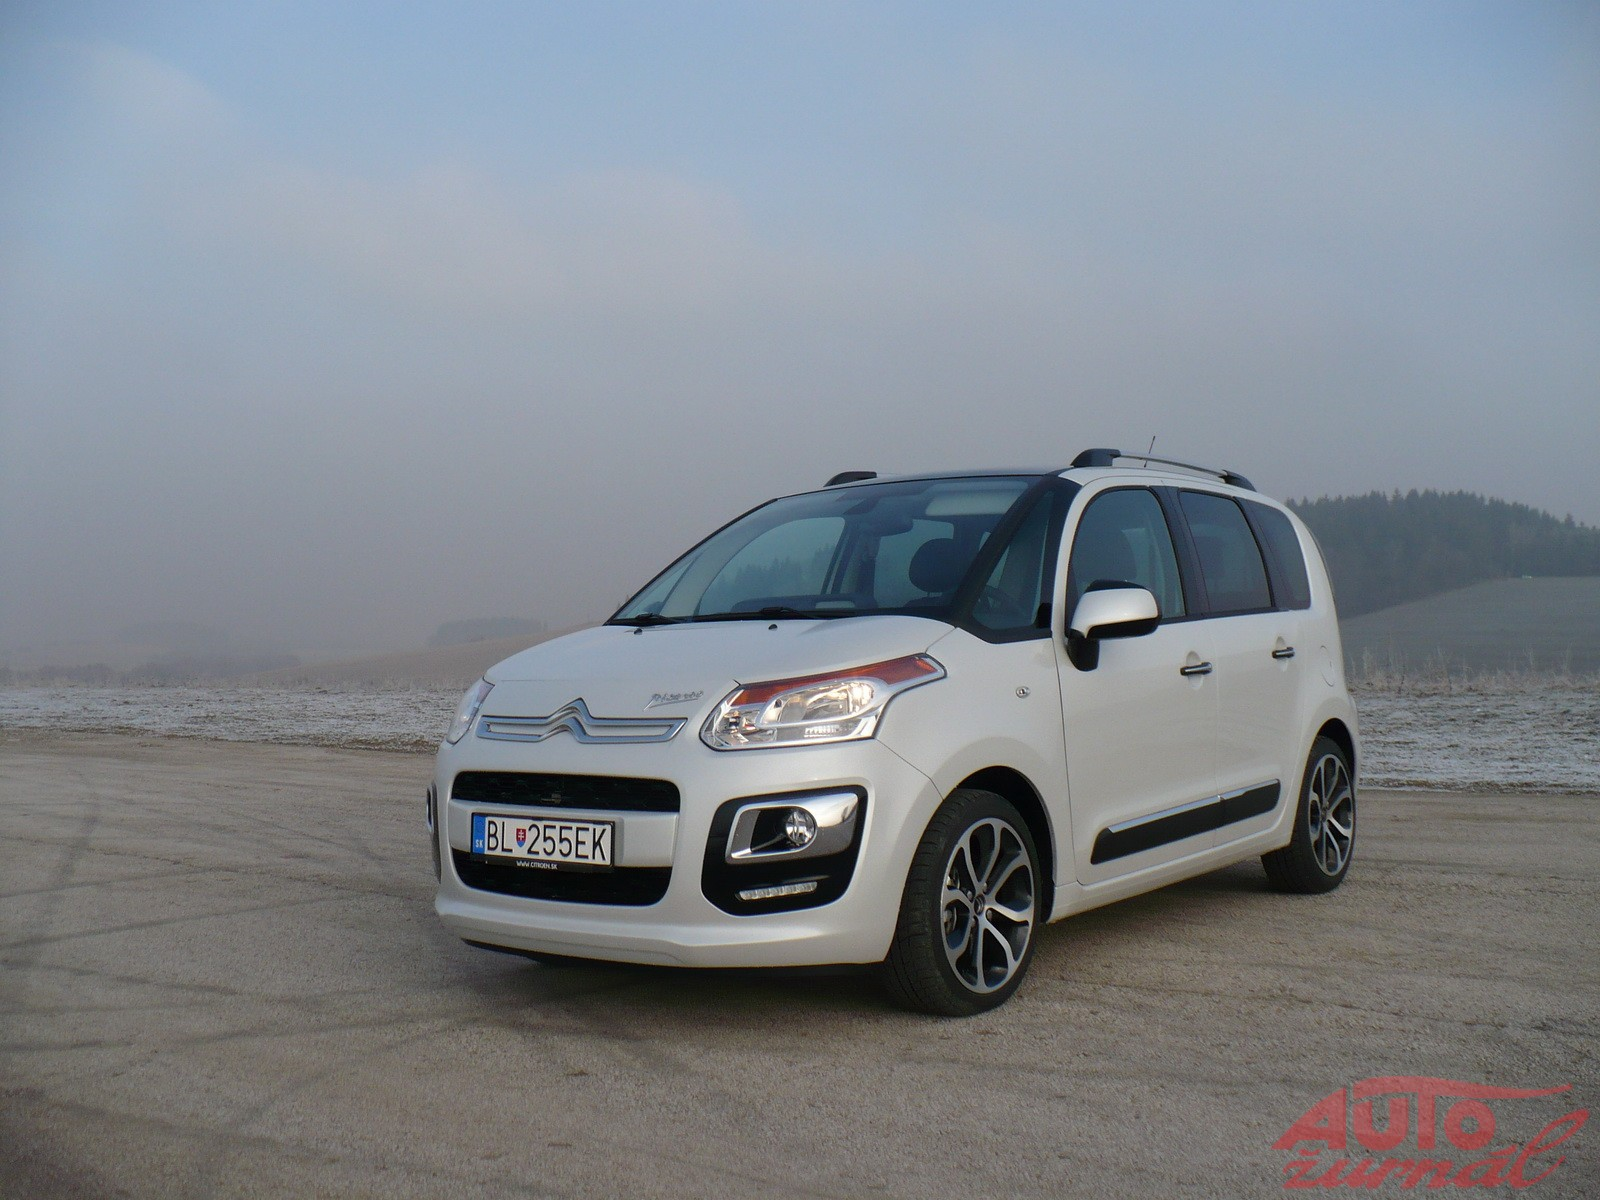 3dtuning of citroen c3 picasso facelift 5 door 2013 unique on line car. Black Bedroom Furniture Sets. Home Design Ideas